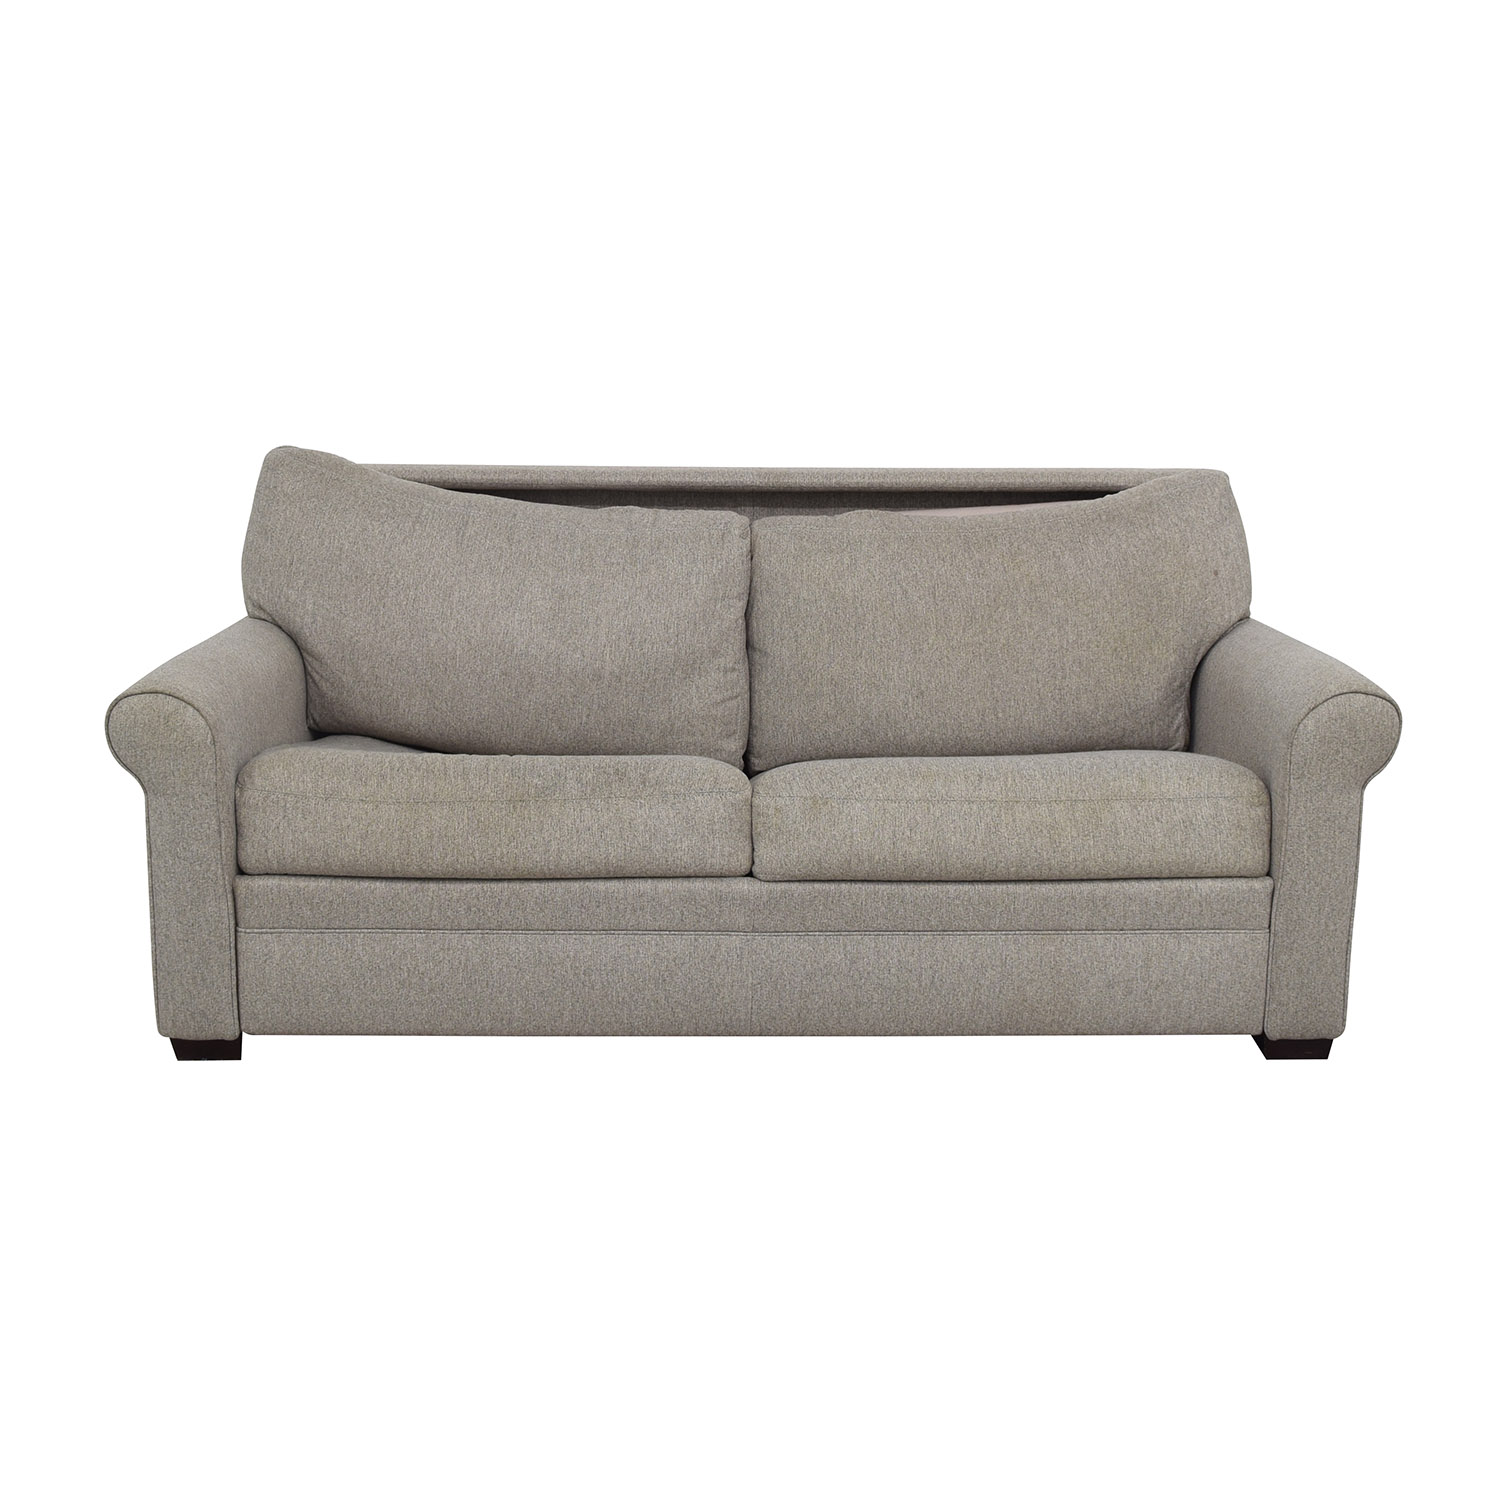 American Leather American Leather Gaines Queen Sleeper Sofa light grey